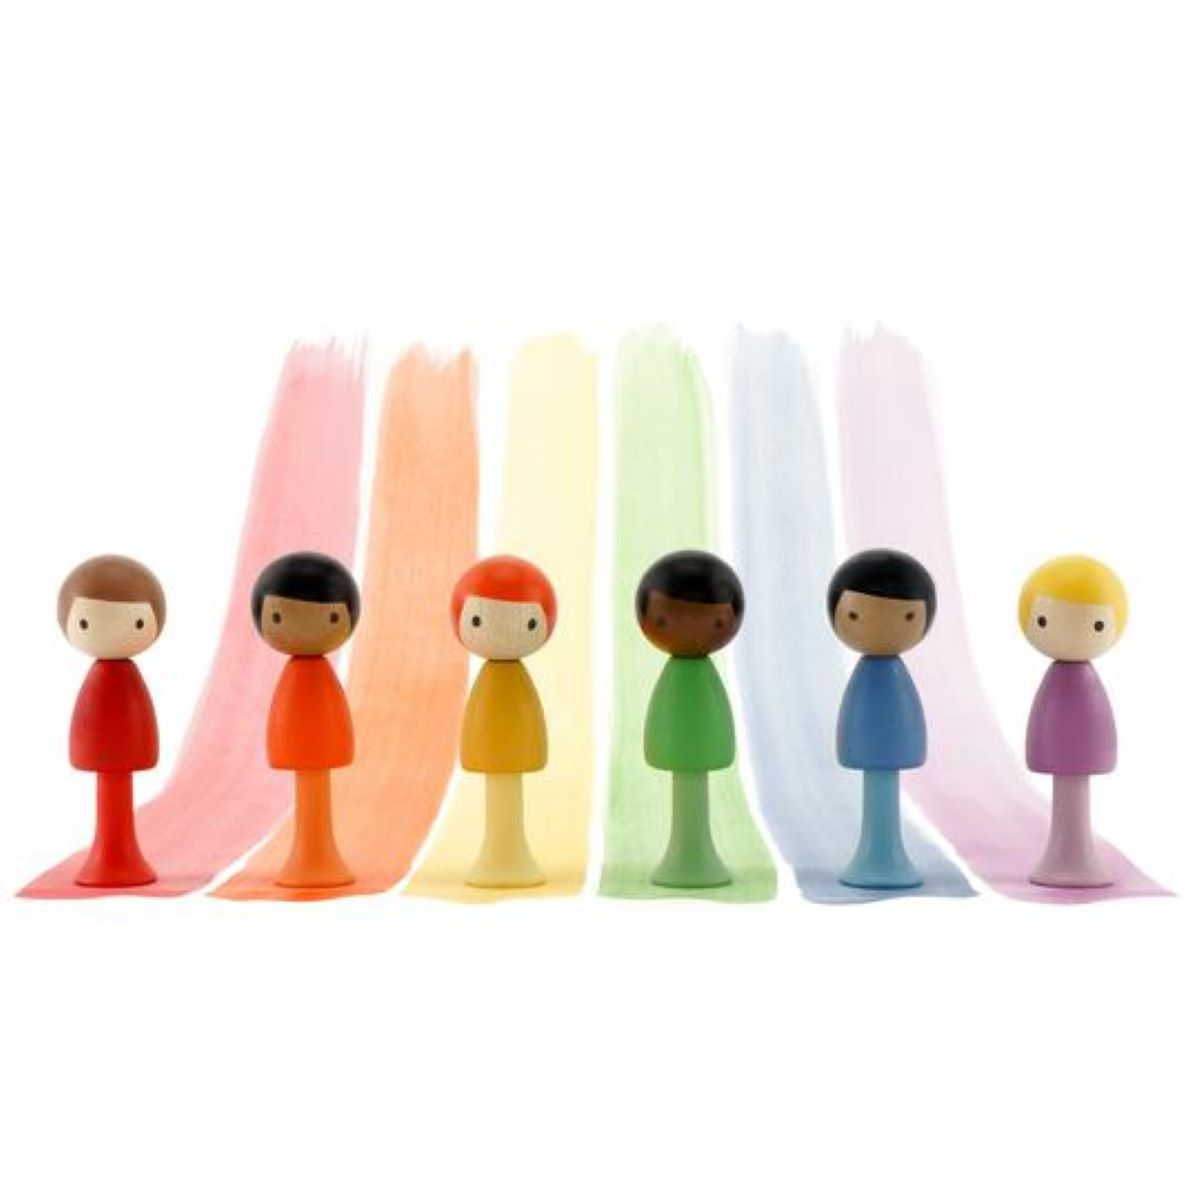 Clicques - Rainbow Boys Wooden Figurines